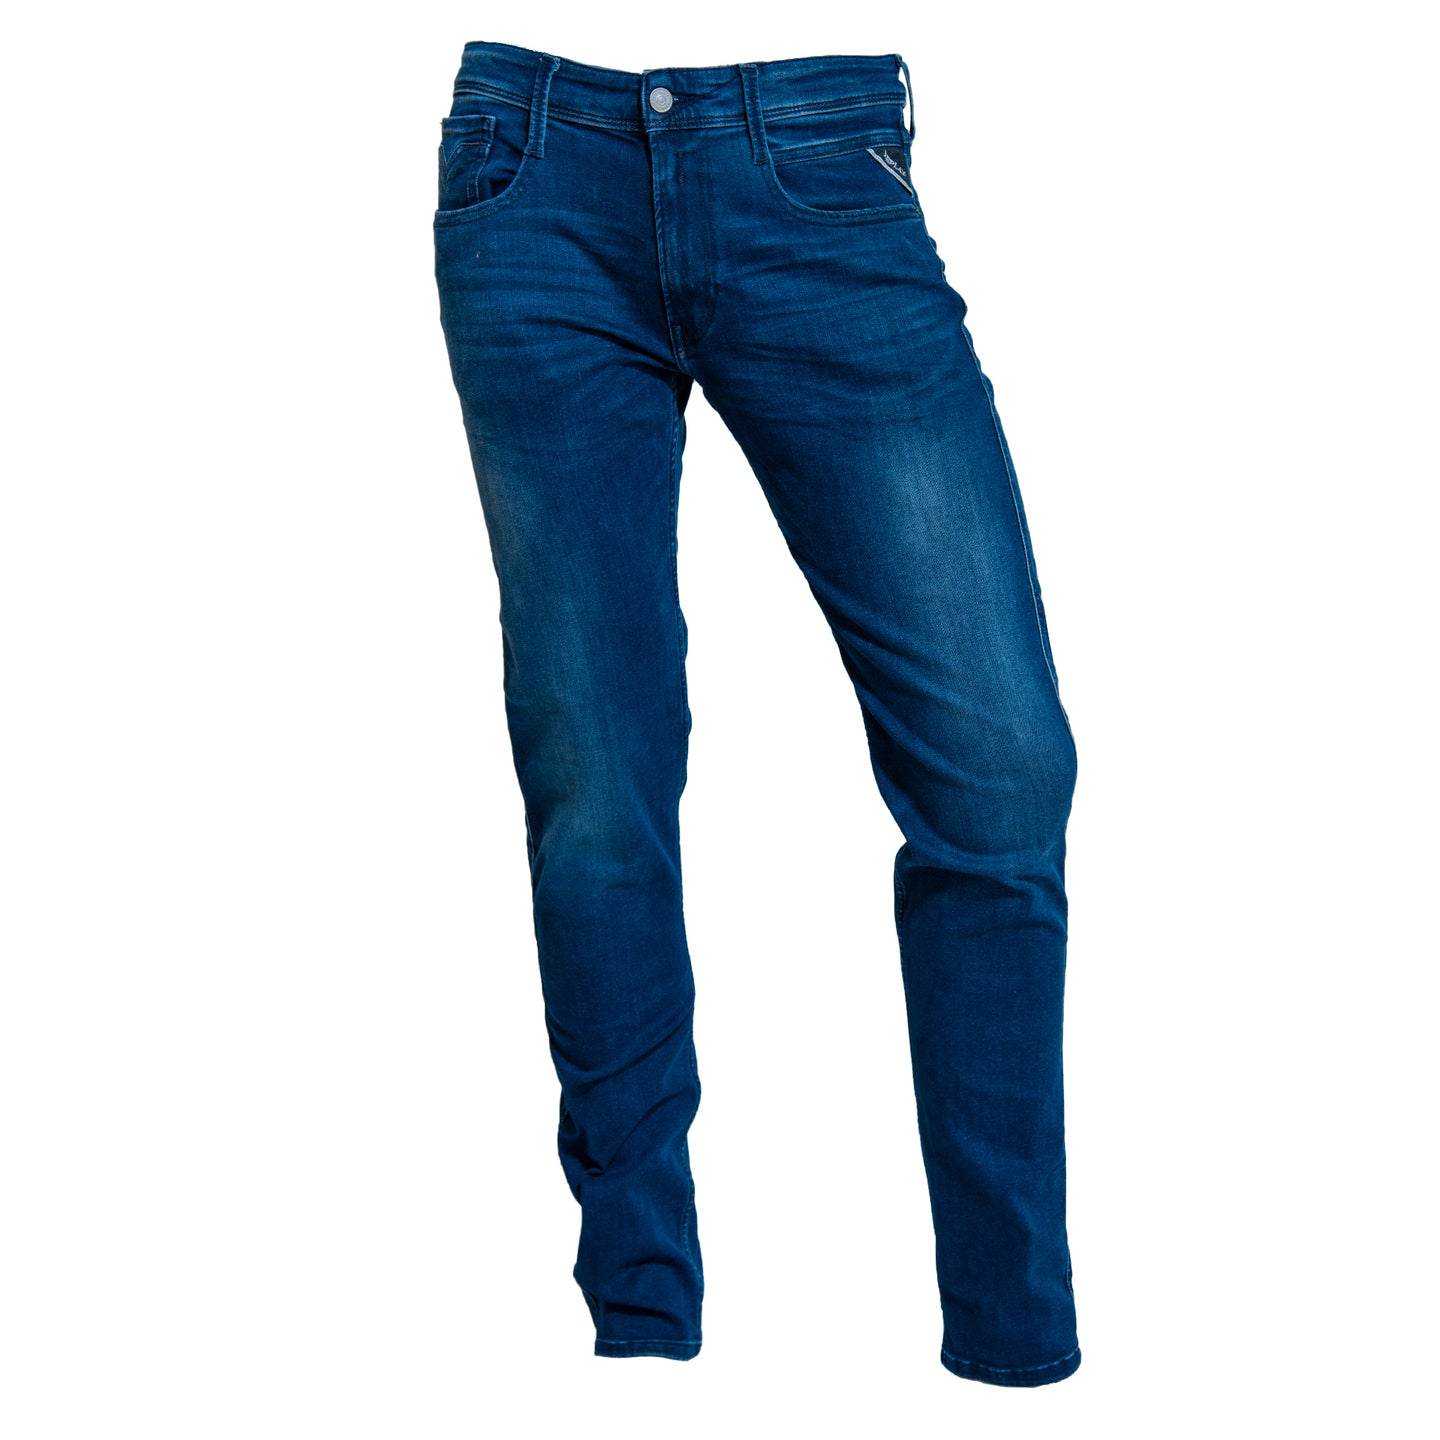 Replay Jeans Dark Indigo Anbass Power Stretch Denim